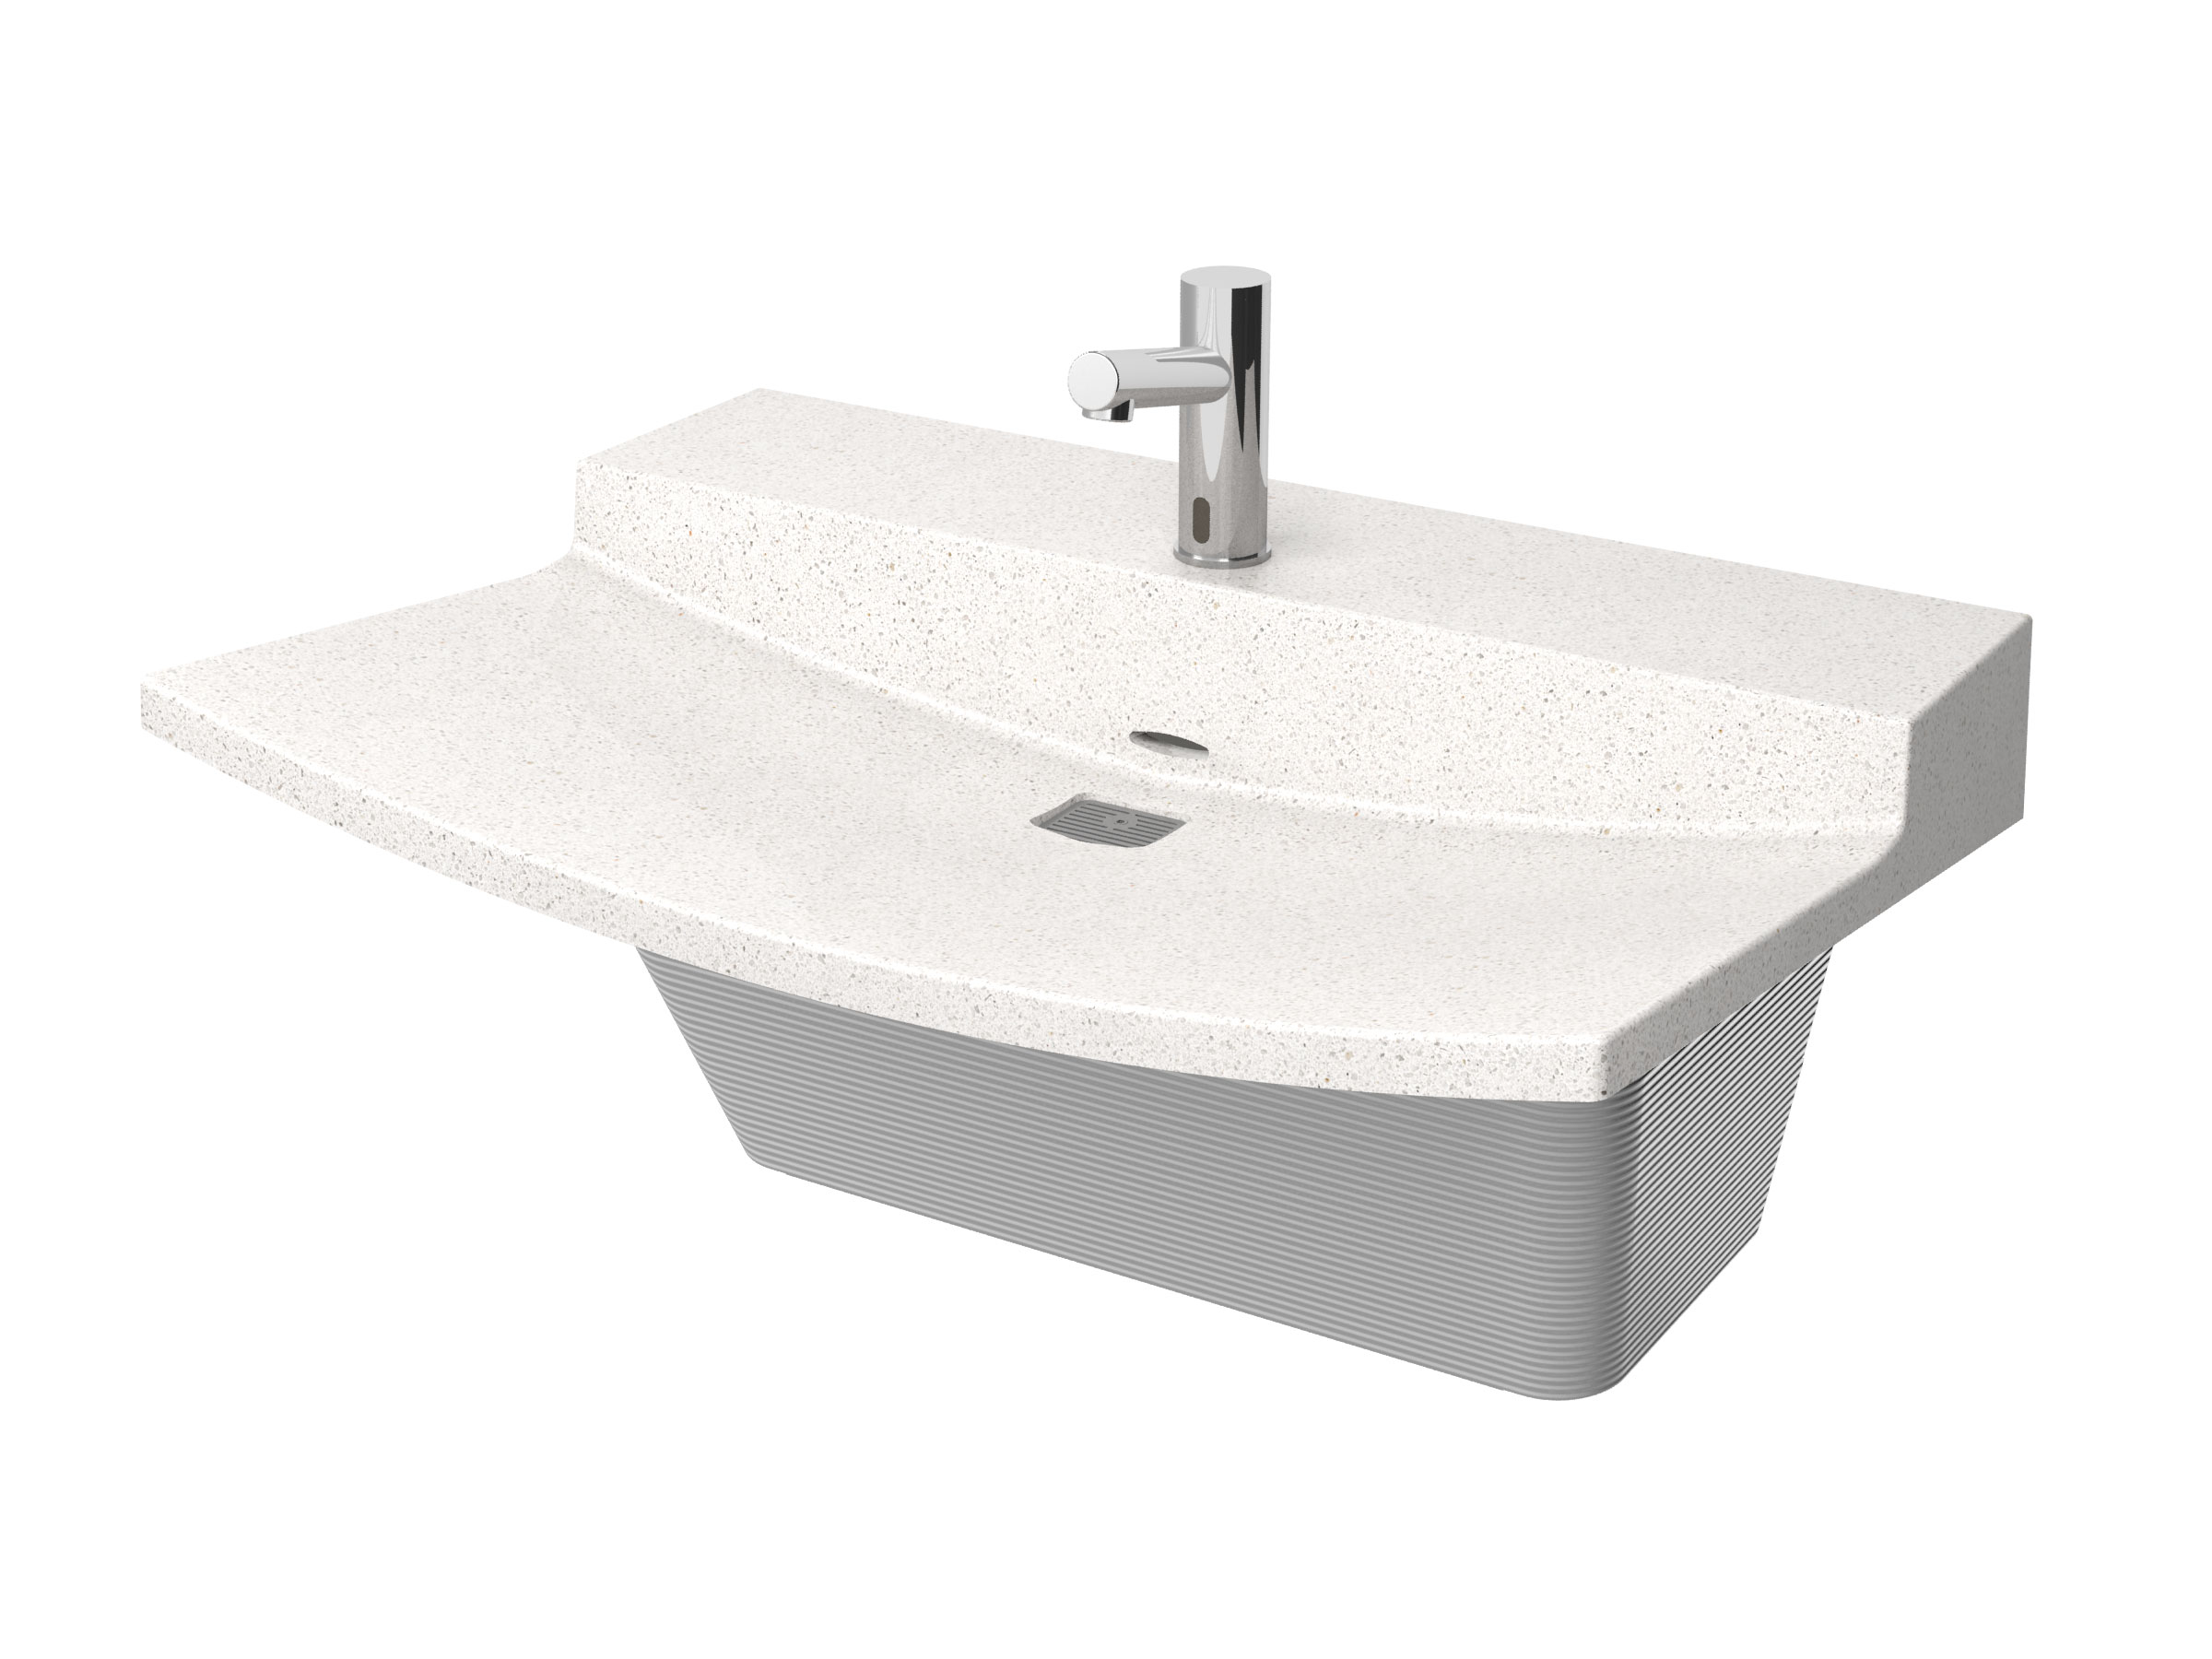 Sink Lavatory : Bradley BIM Revit -ArchiCAD -Bentley -Vectorworks ? Bradley Revit ...